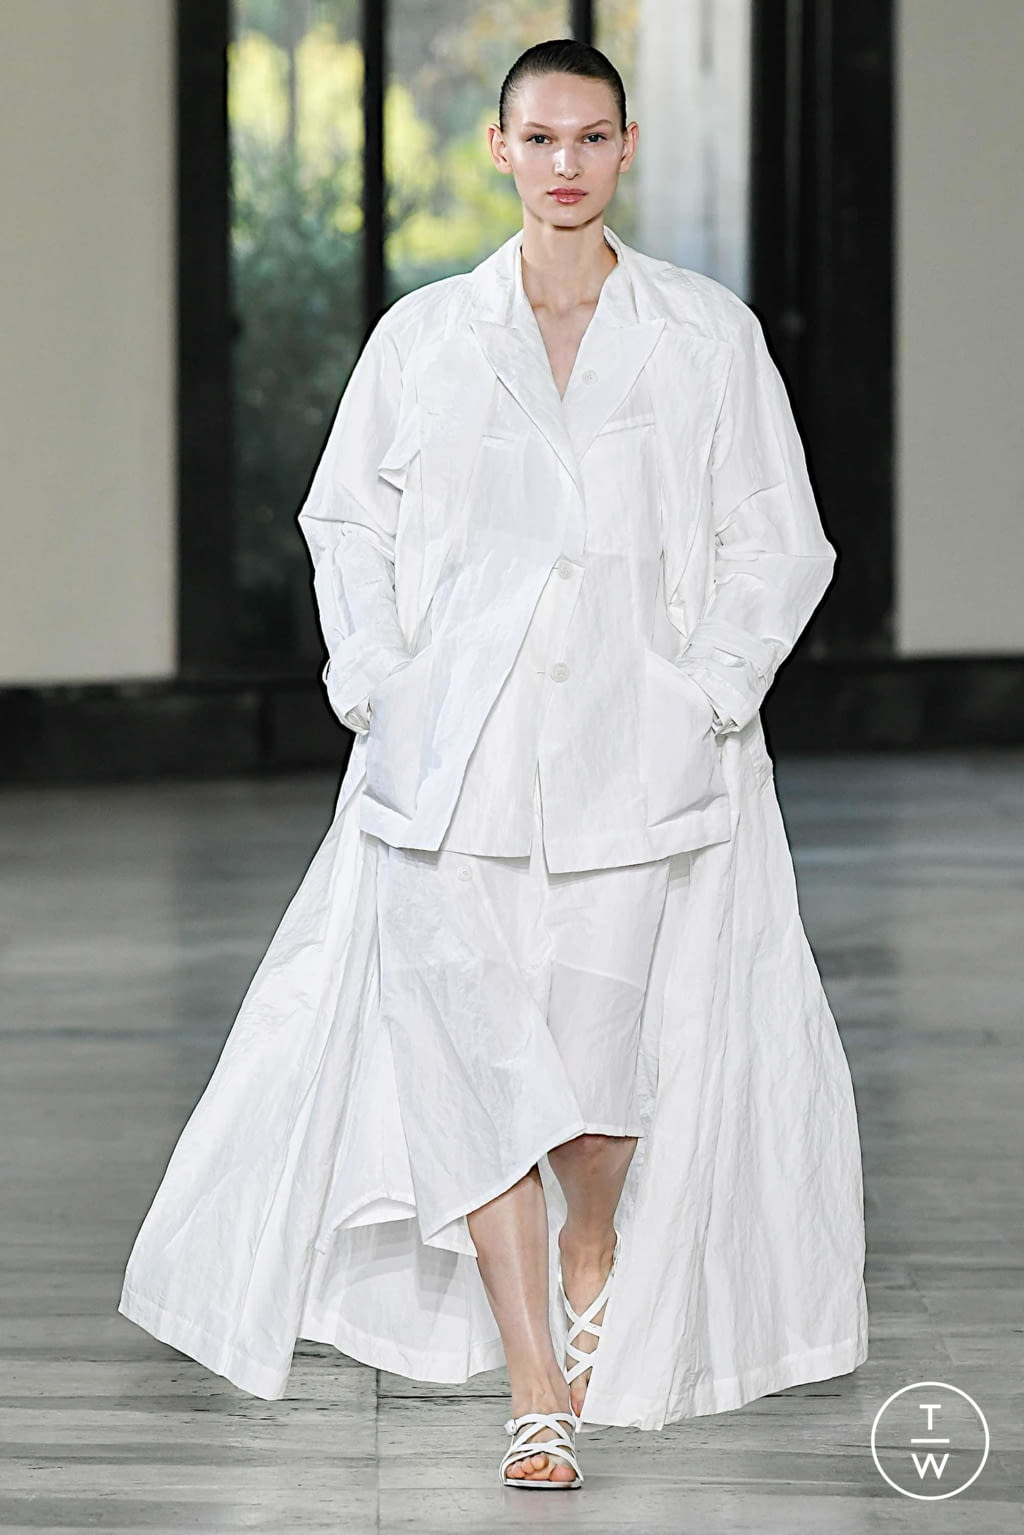 Fashion Week Paris Spring/Summer 2020 look 22 de la collection Dawei womenswear